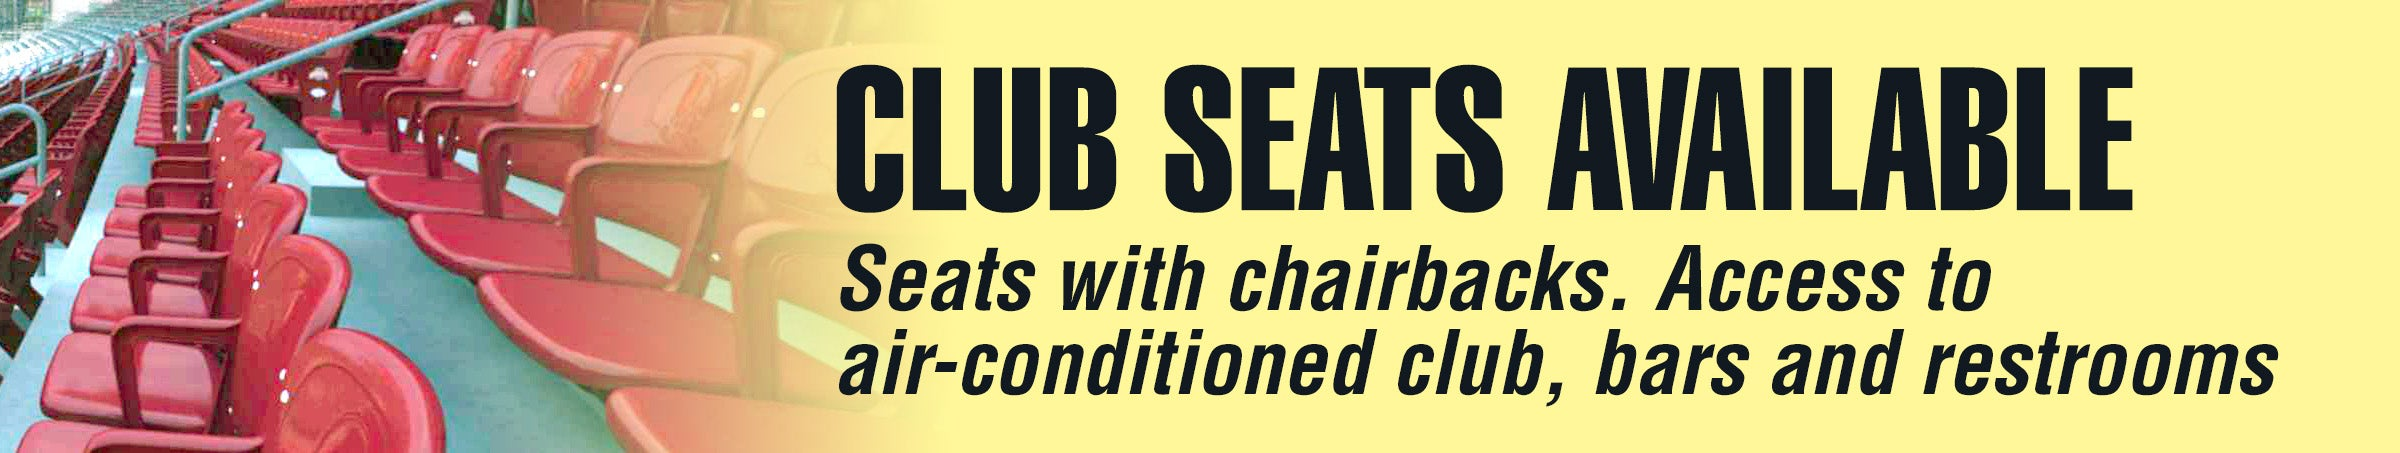 Club Seats to learn more call us 614-688-3939